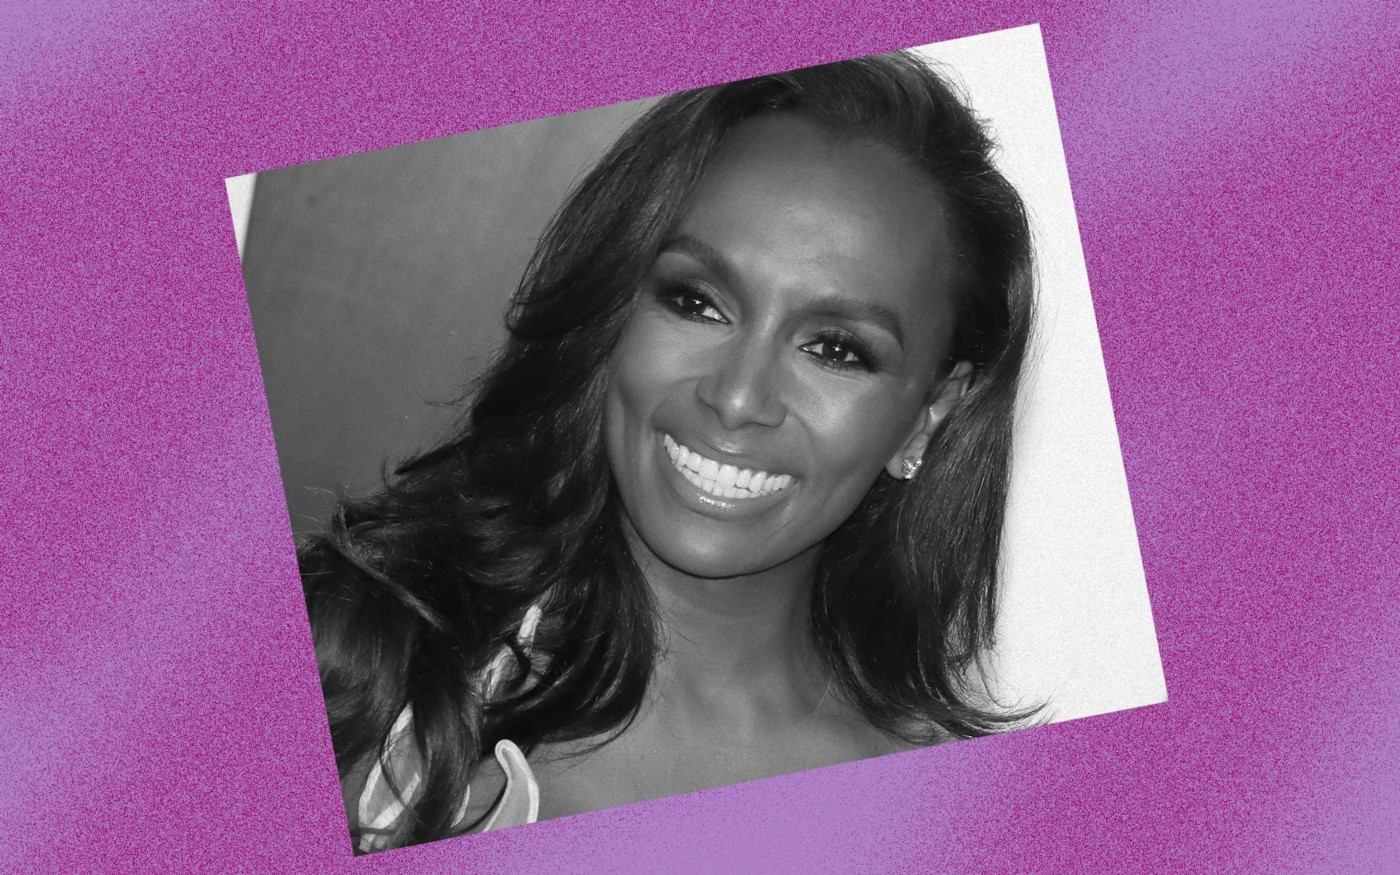 Black and white photo of Janet Mock against a violet background.